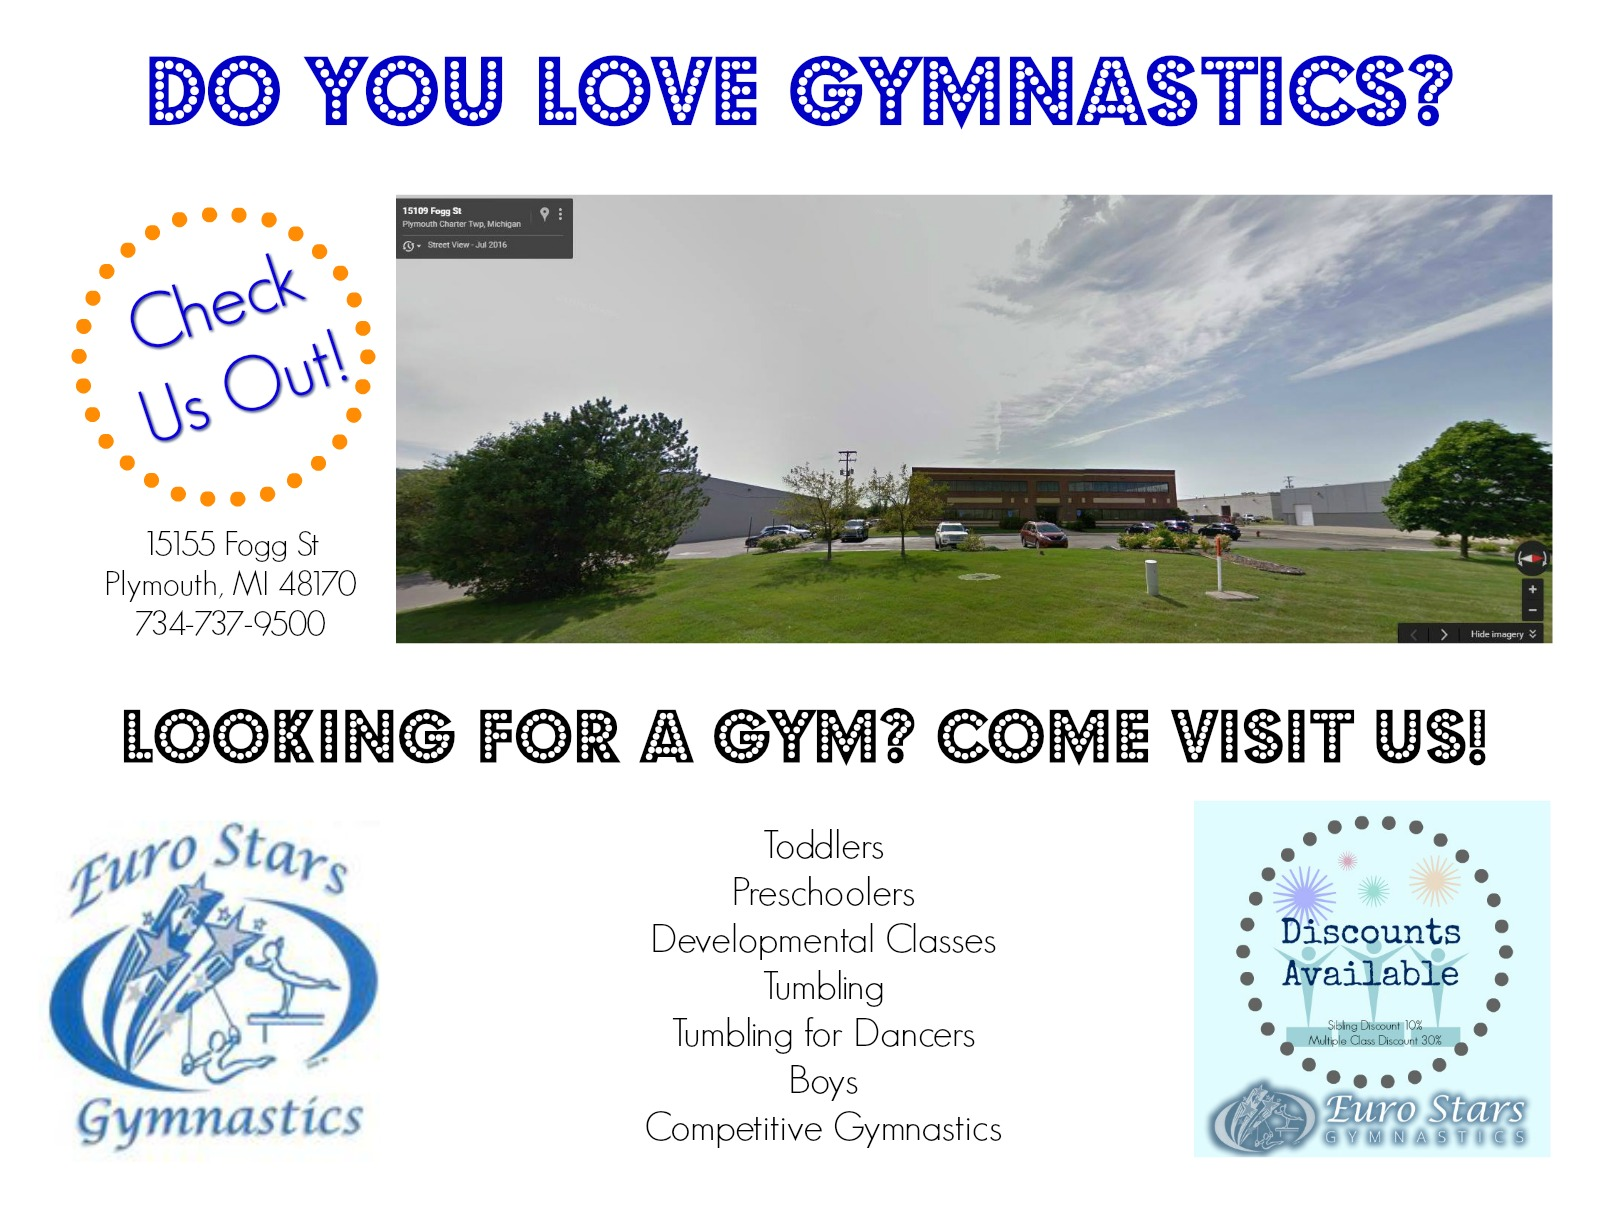 Euro Stars gymnastics, get fit while having fun while for kids of all ages!